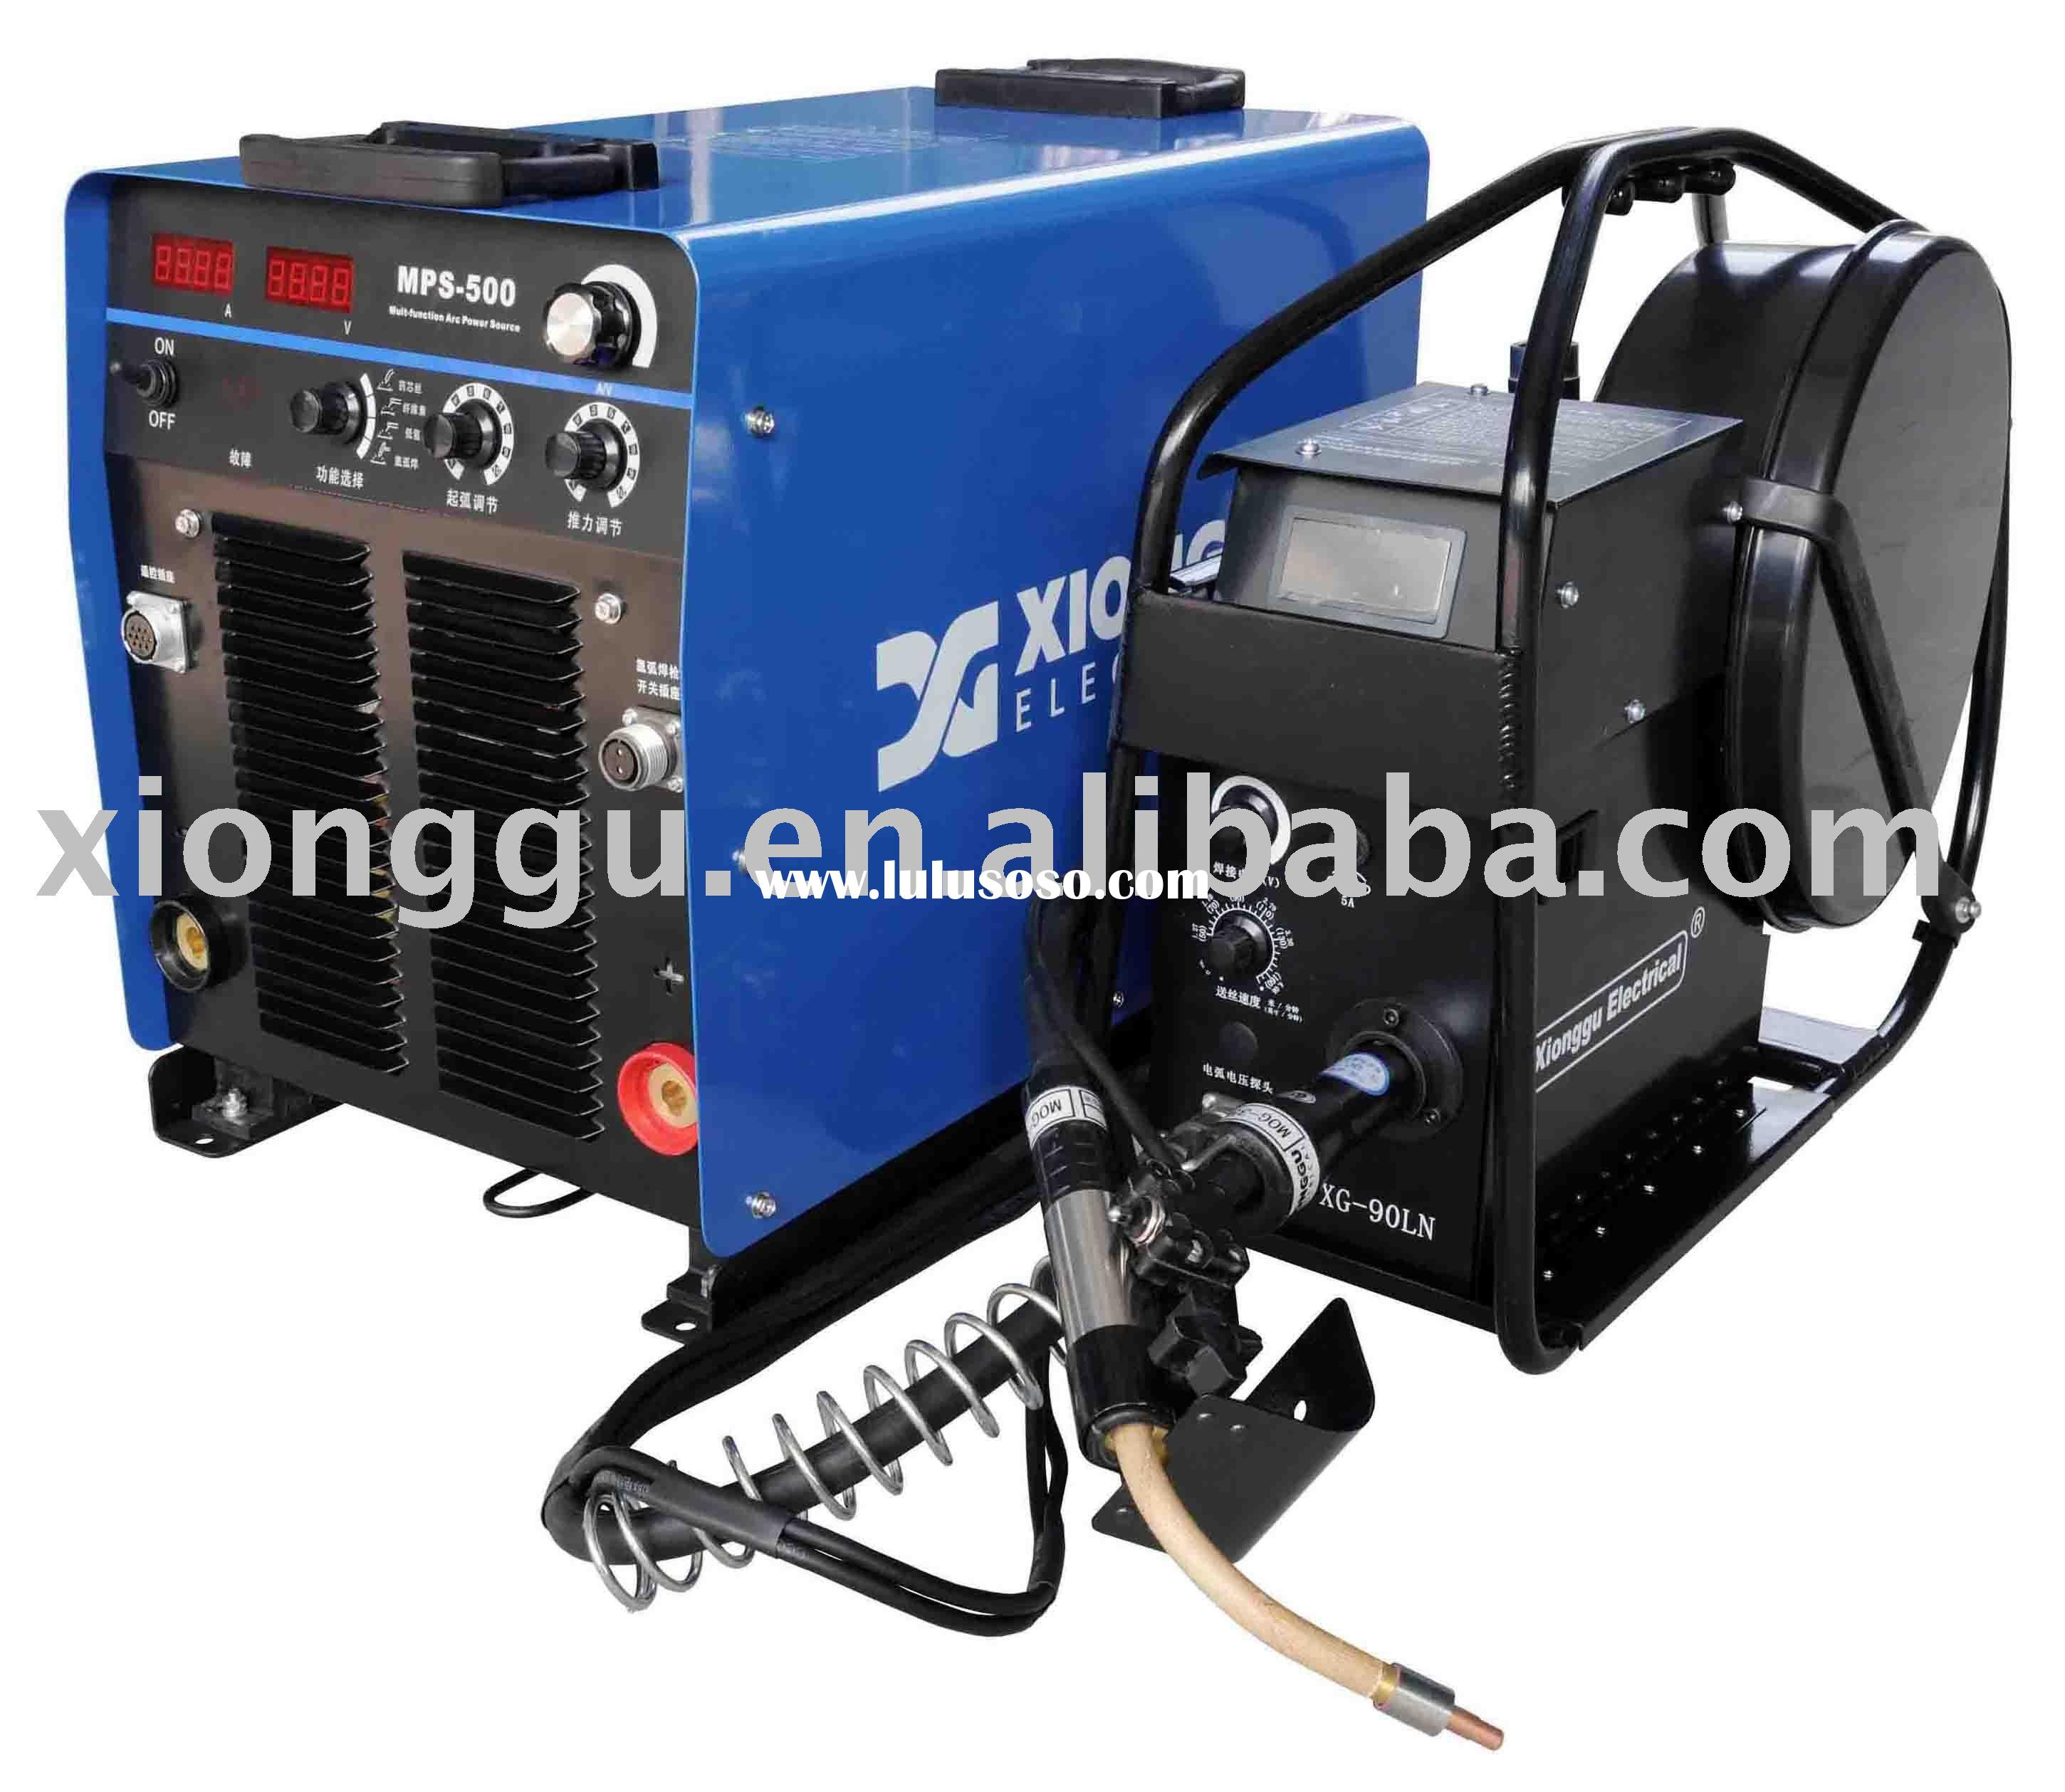 Inverter multi-function pipeline welding machine(self-shield/hydrogen/cellulose/tig)